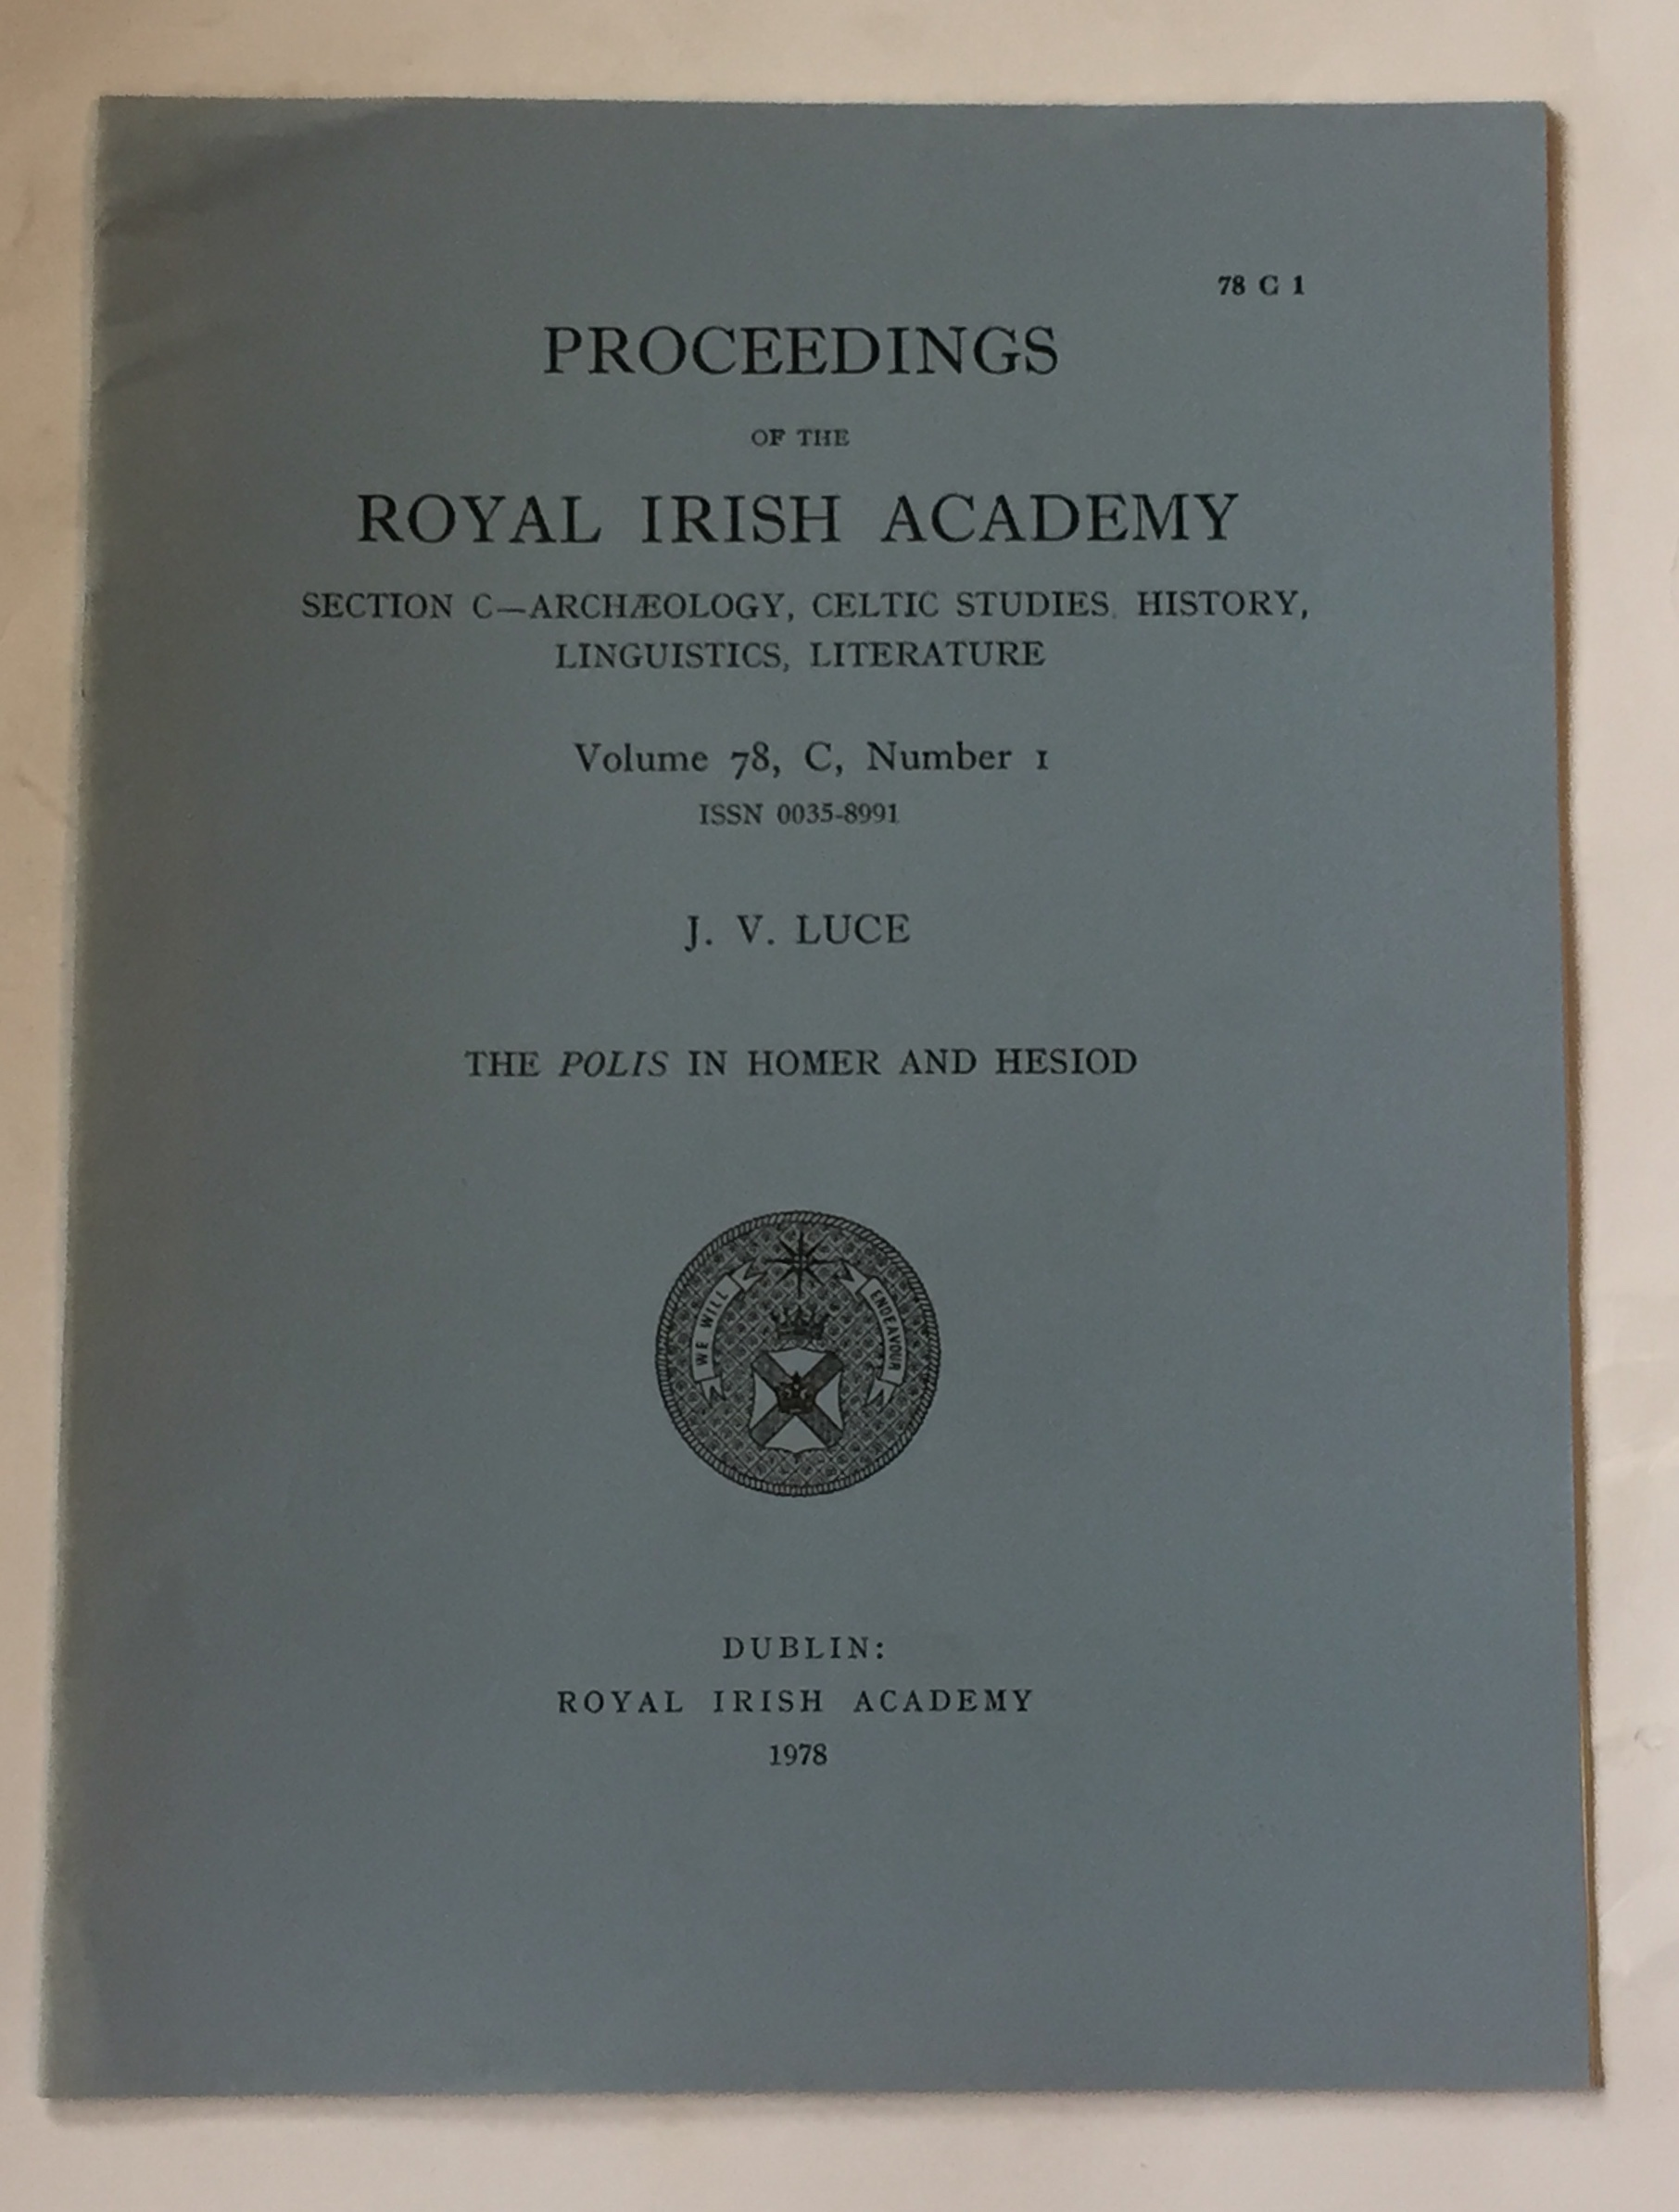 The Polis in Homer and Hesiod :Proceedings of the Royal Irish Academy Volume 78. Section C. No. 1